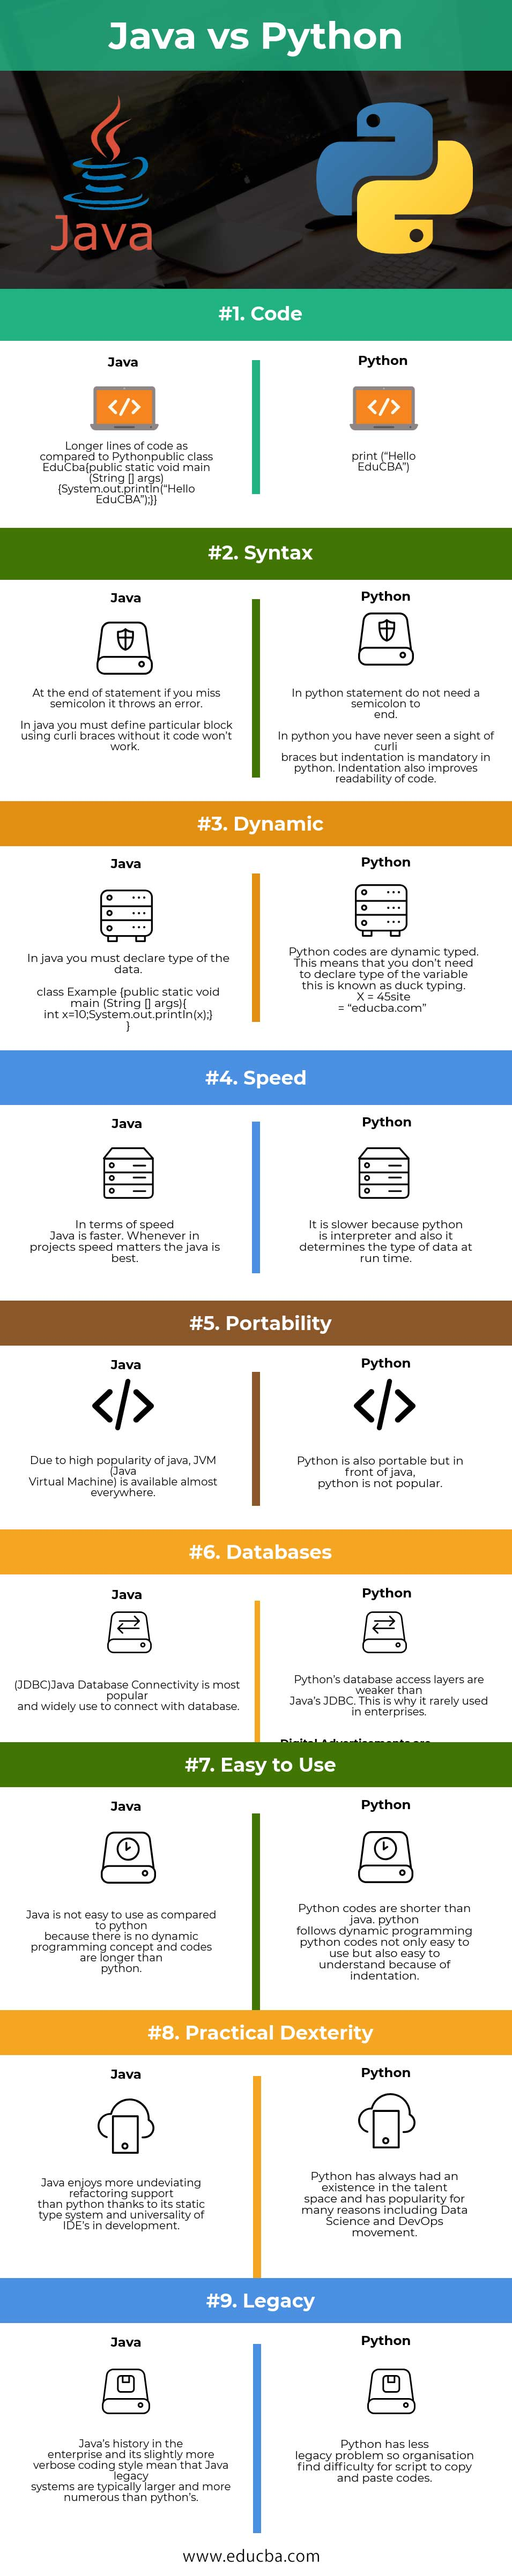 Java vs Python - What's better for your Project?